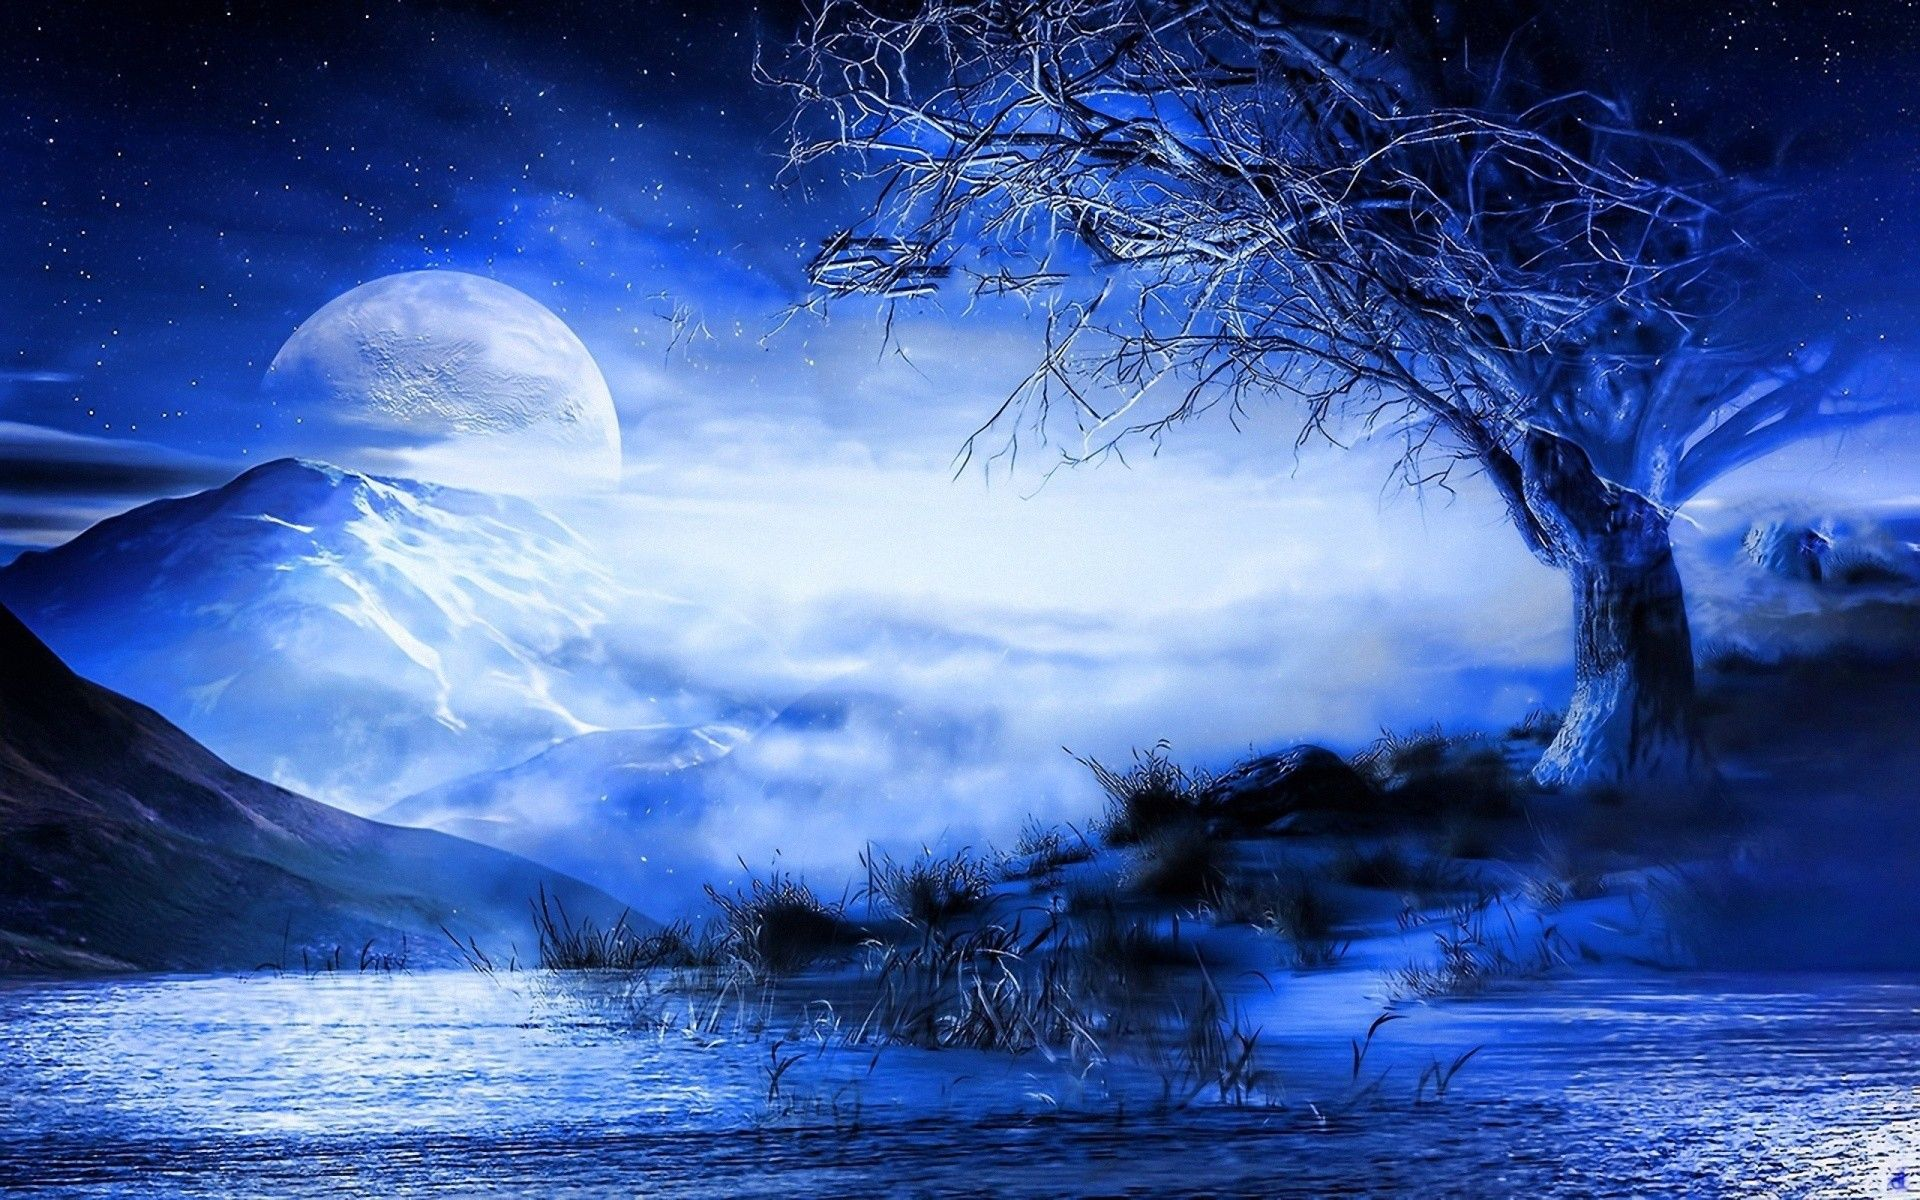 Anime Moon Wallpapers Top Free Anime Moon Backgrounds Wallpaperaccess